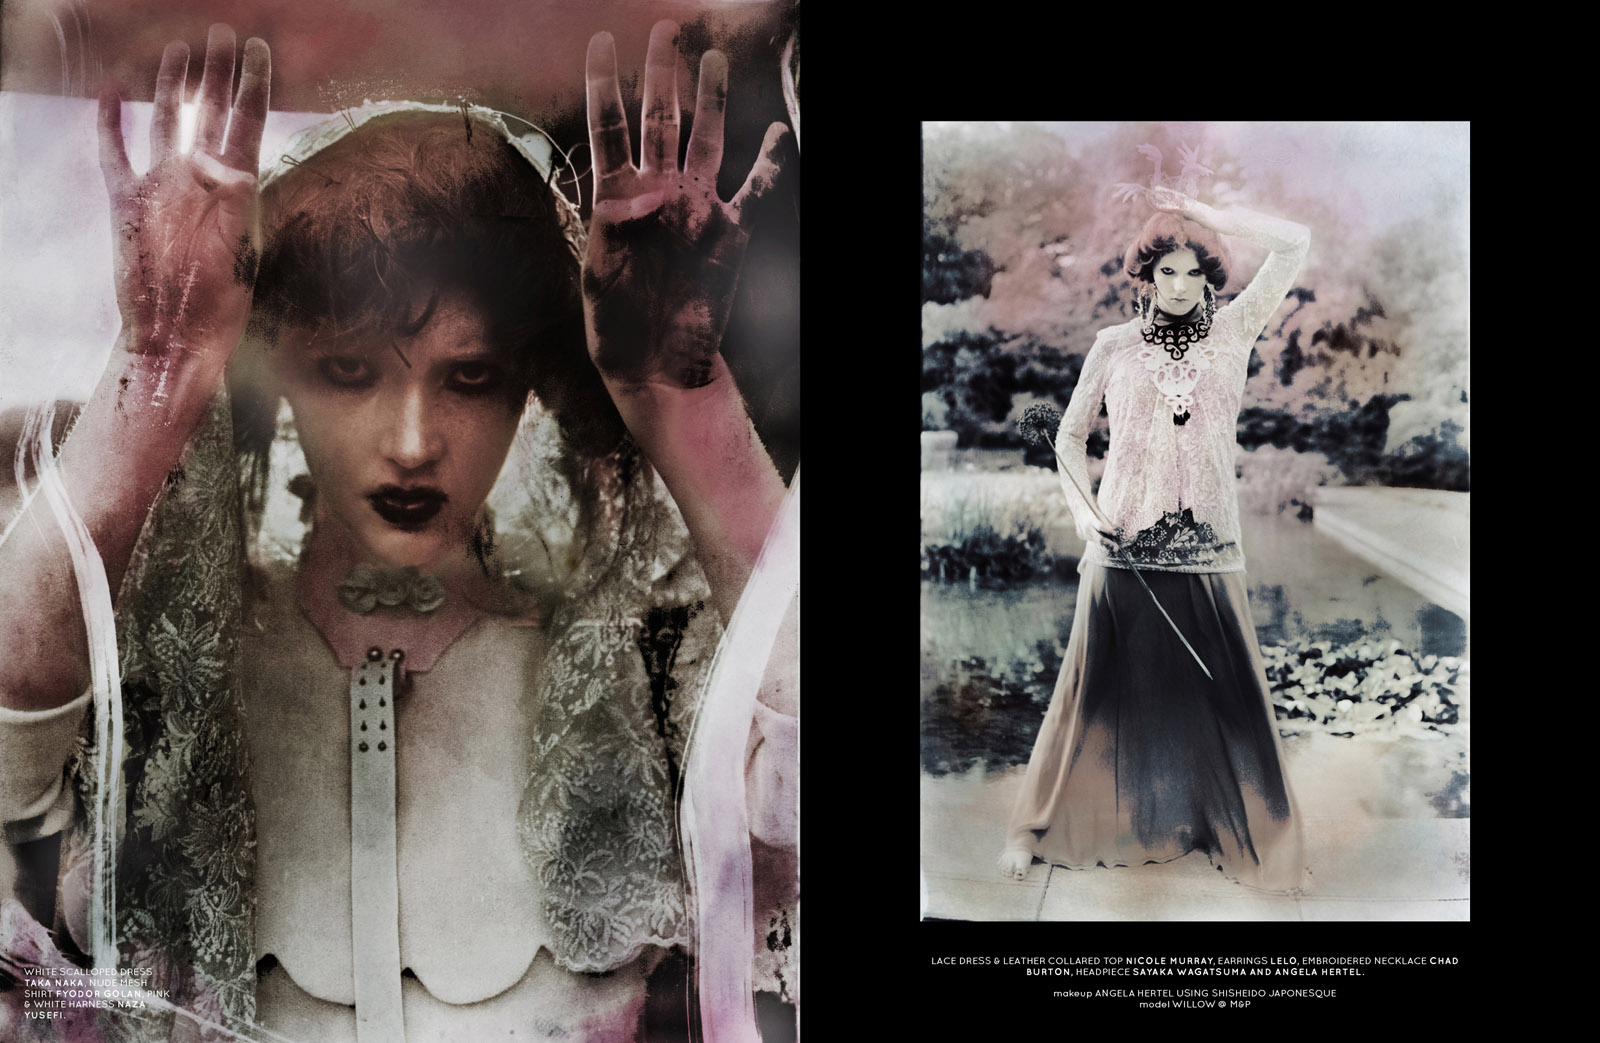 Left: white scalloped dress Taka Naka, nude mesh shirt Fyodor Golan, pink & white harness Naza Yusefi. Right: lace dress & leather collared top Nicole Murray, earrings Lelo, embroidered necklace Chad Burton, headpiece Sayaka Wagatsuma and Angela Hertel.